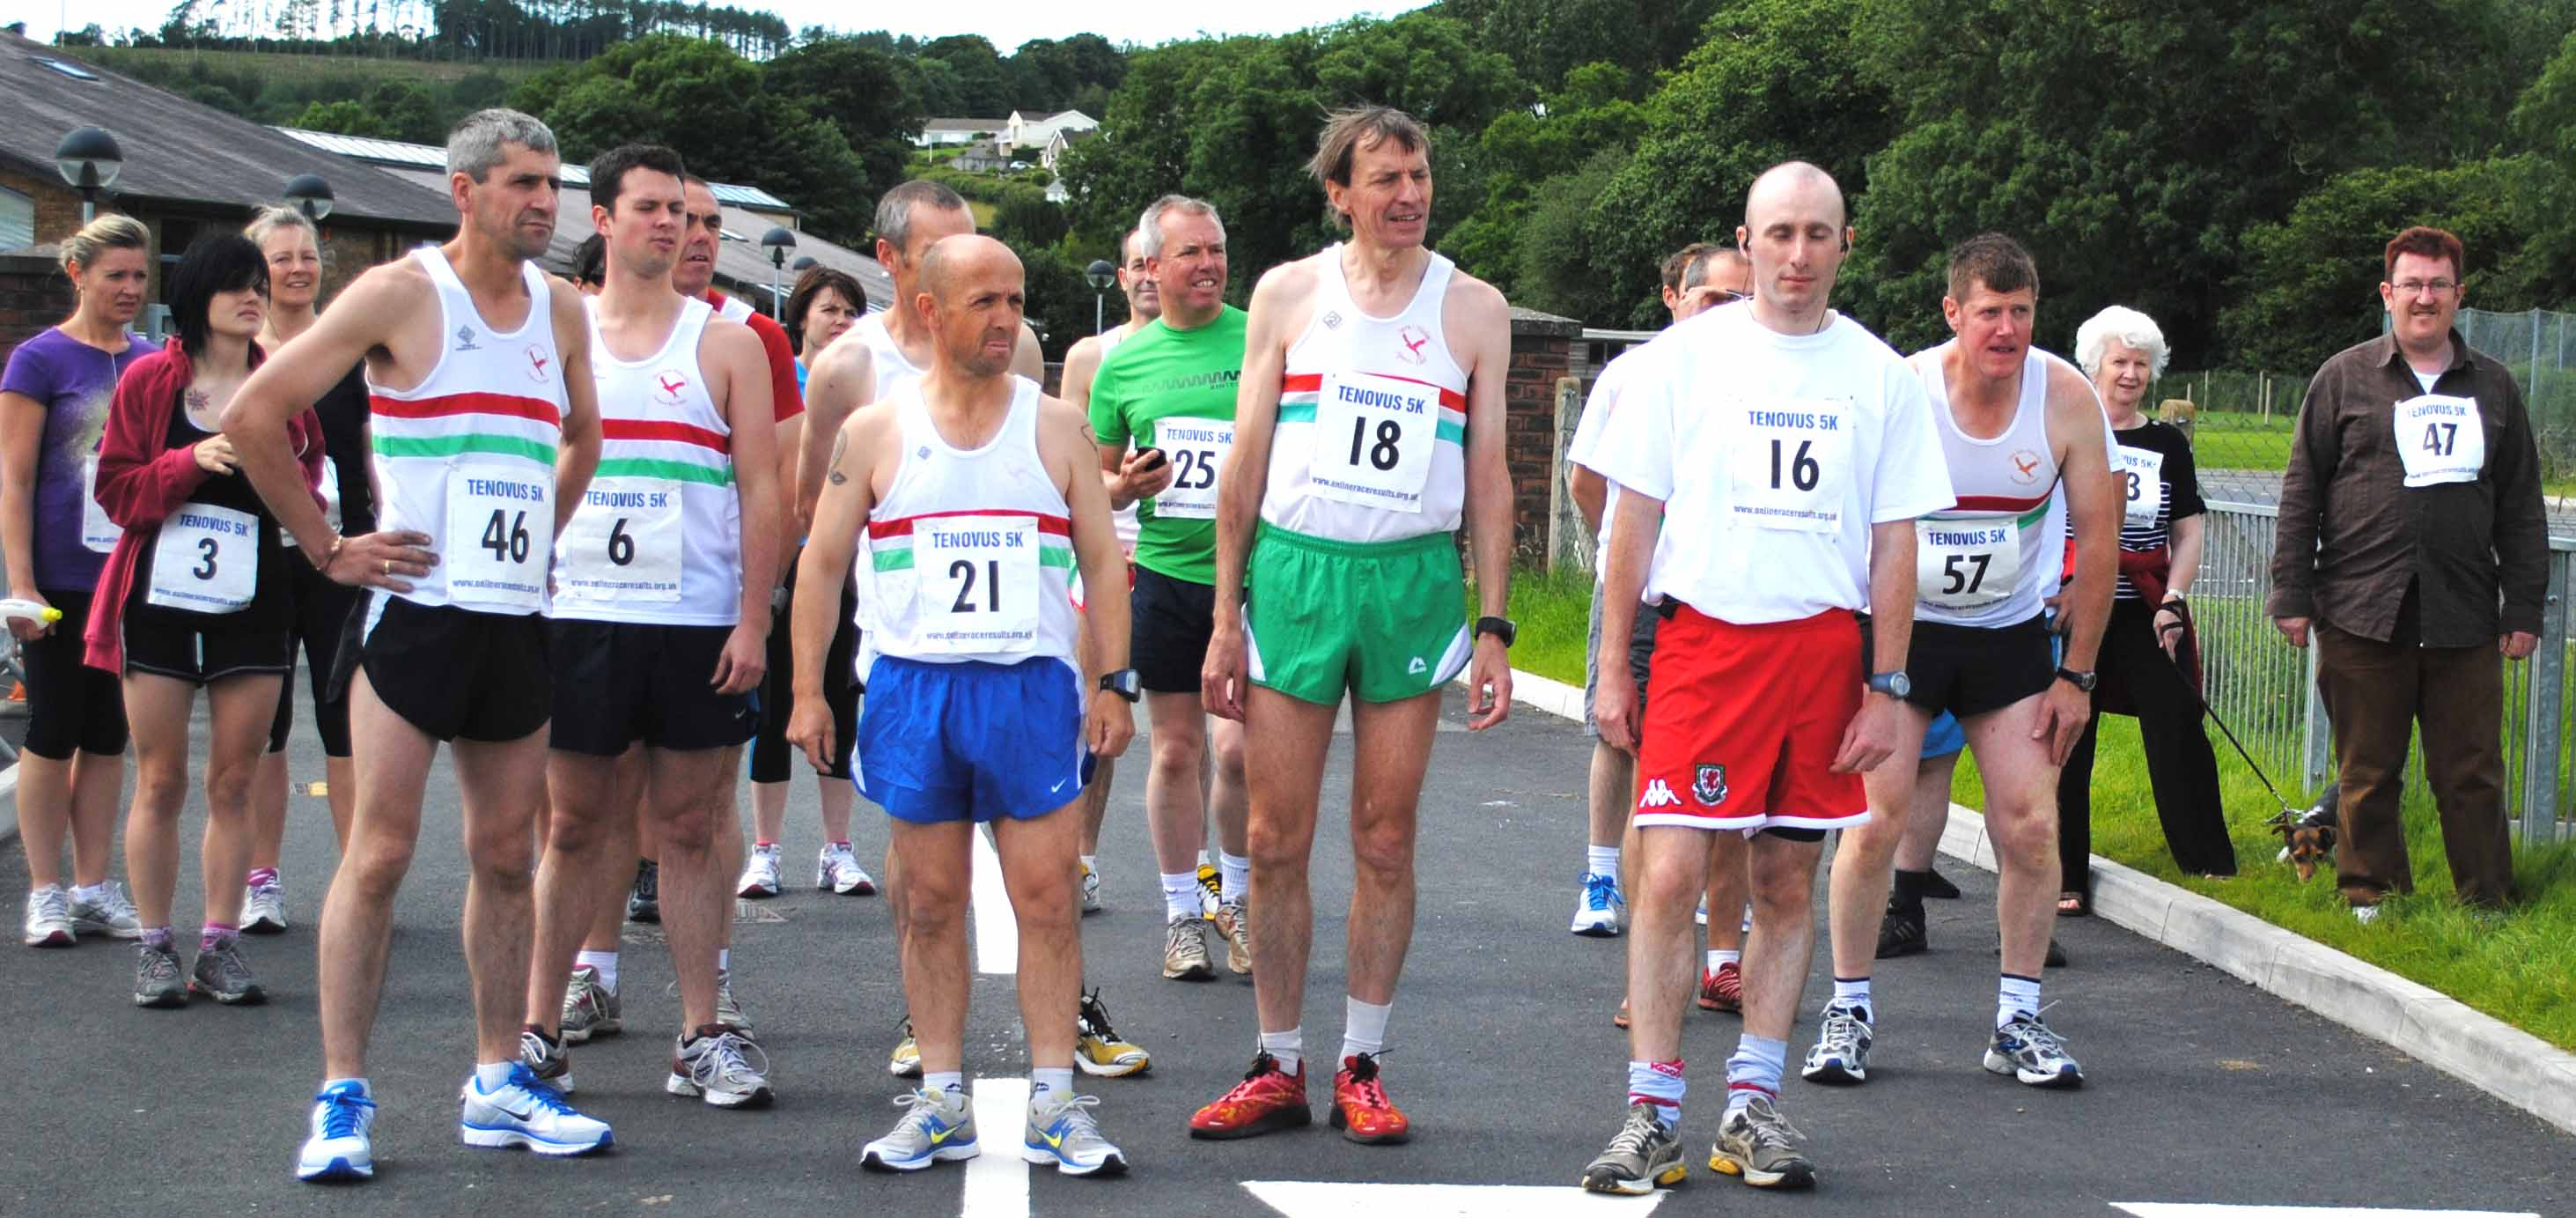 Lampeter Tenovus Run For The Bus 5k 2012